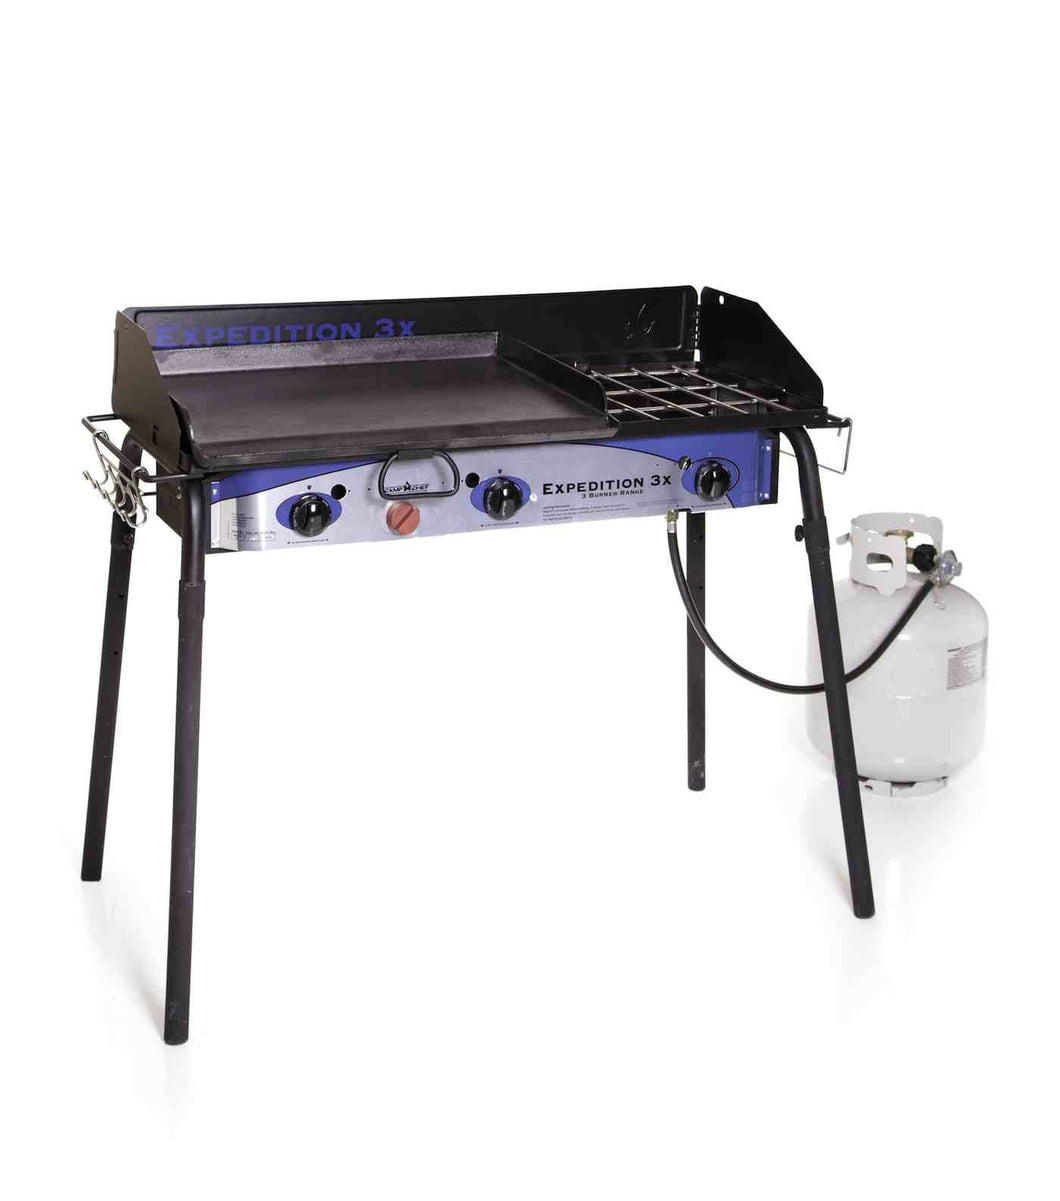 Camp Chef Expedition 3X Triple Burner Stove w/Griddle (Colors: White/Blue/Black)